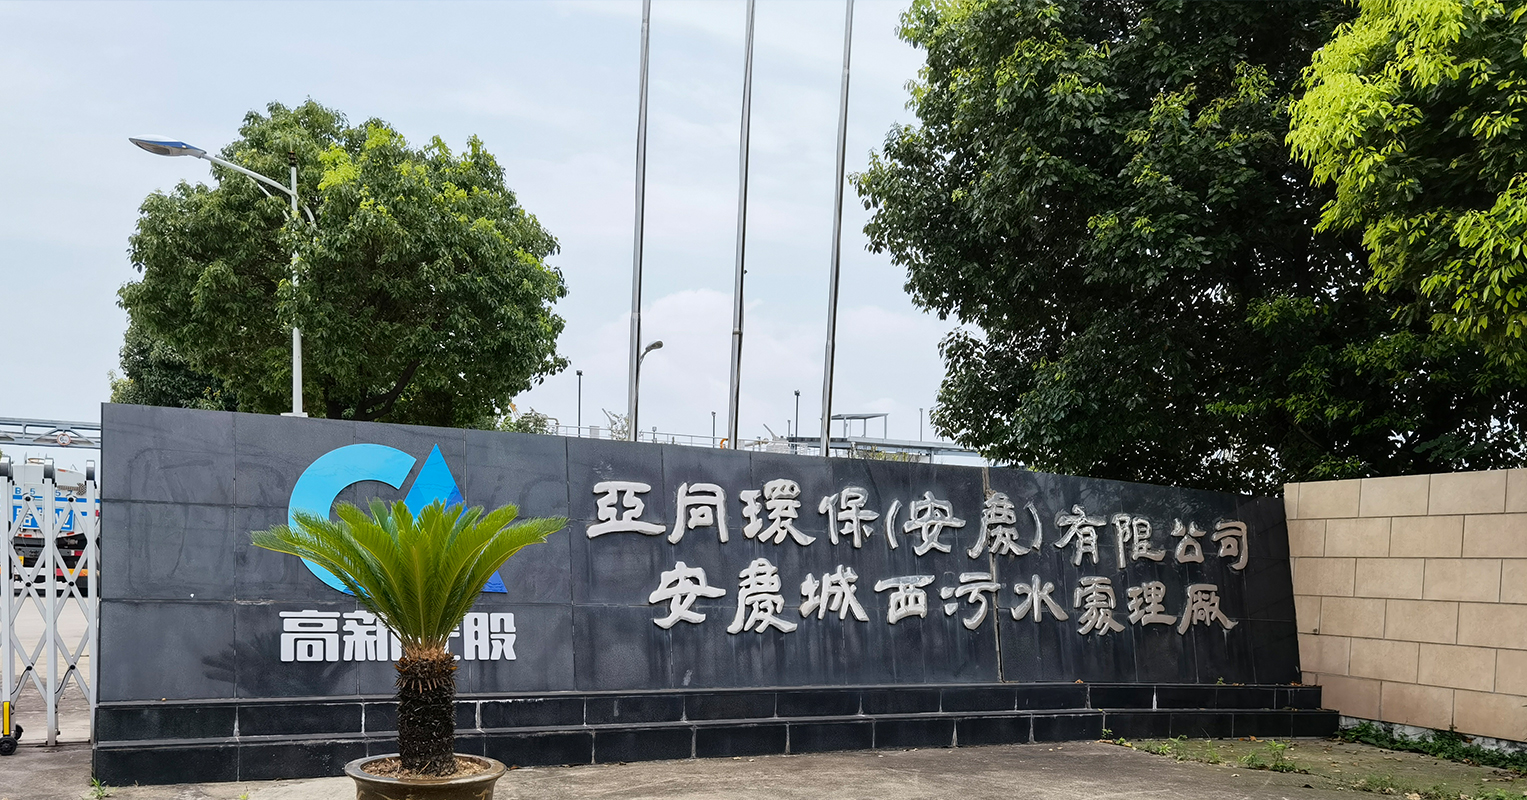 Supmea flowmeter used in Anqing Sewage Plant